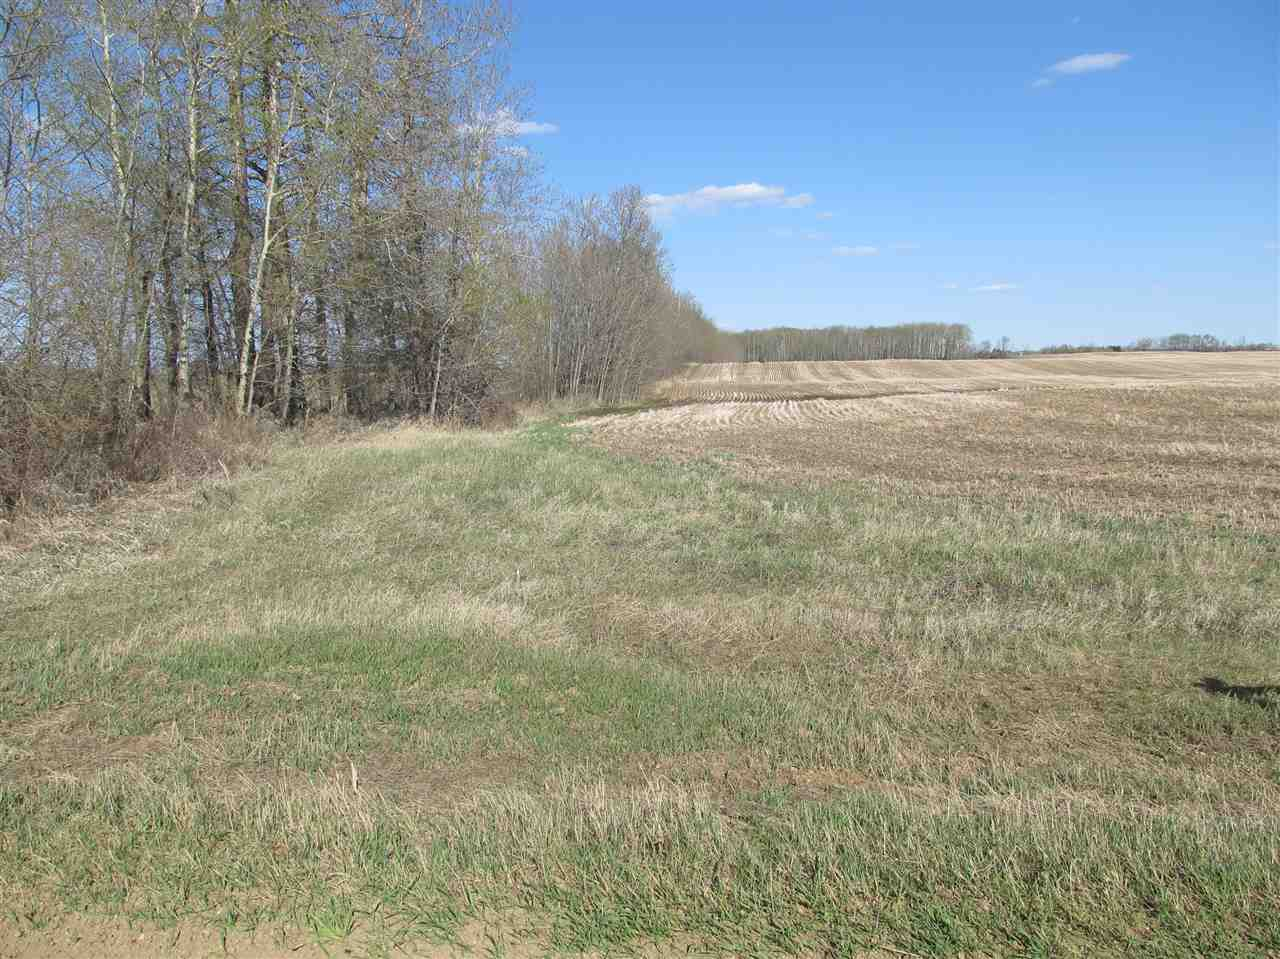 Main Photo: rr 205 north of hwy 18: Rural Thorhild County Rural Land/Vacant Lot for sale : MLS(r) # E4070447